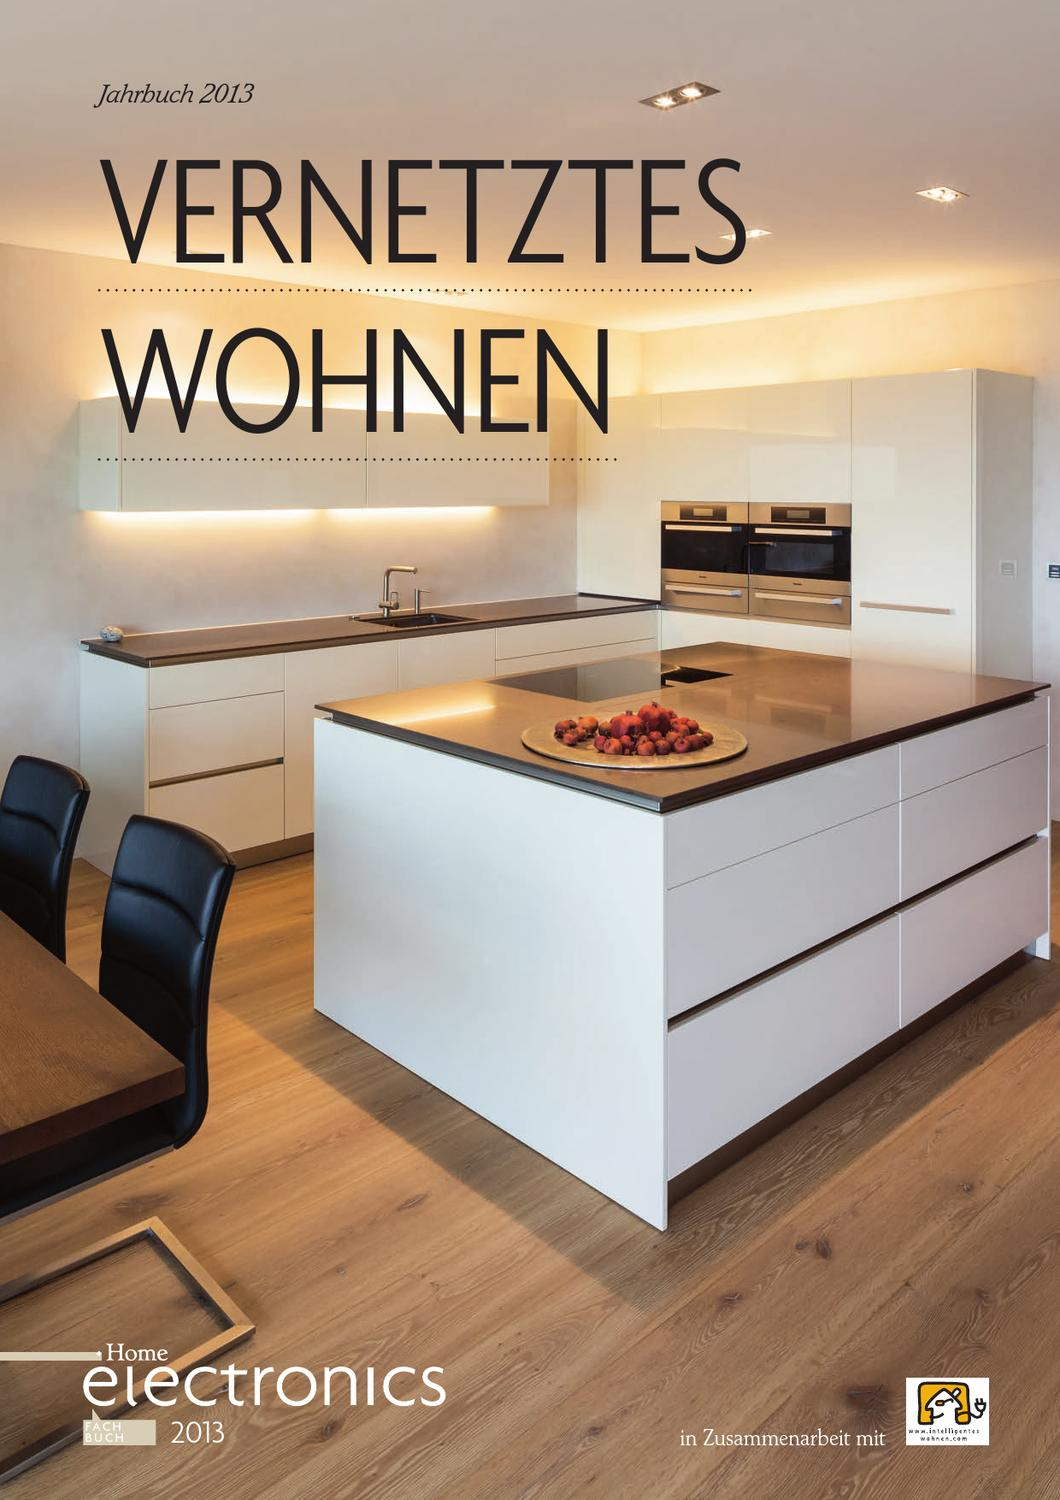 jahrbuch vernetztes wohnen 2013 by p a media ag issuu. Black Bedroom Furniture Sets. Home Design Ideas